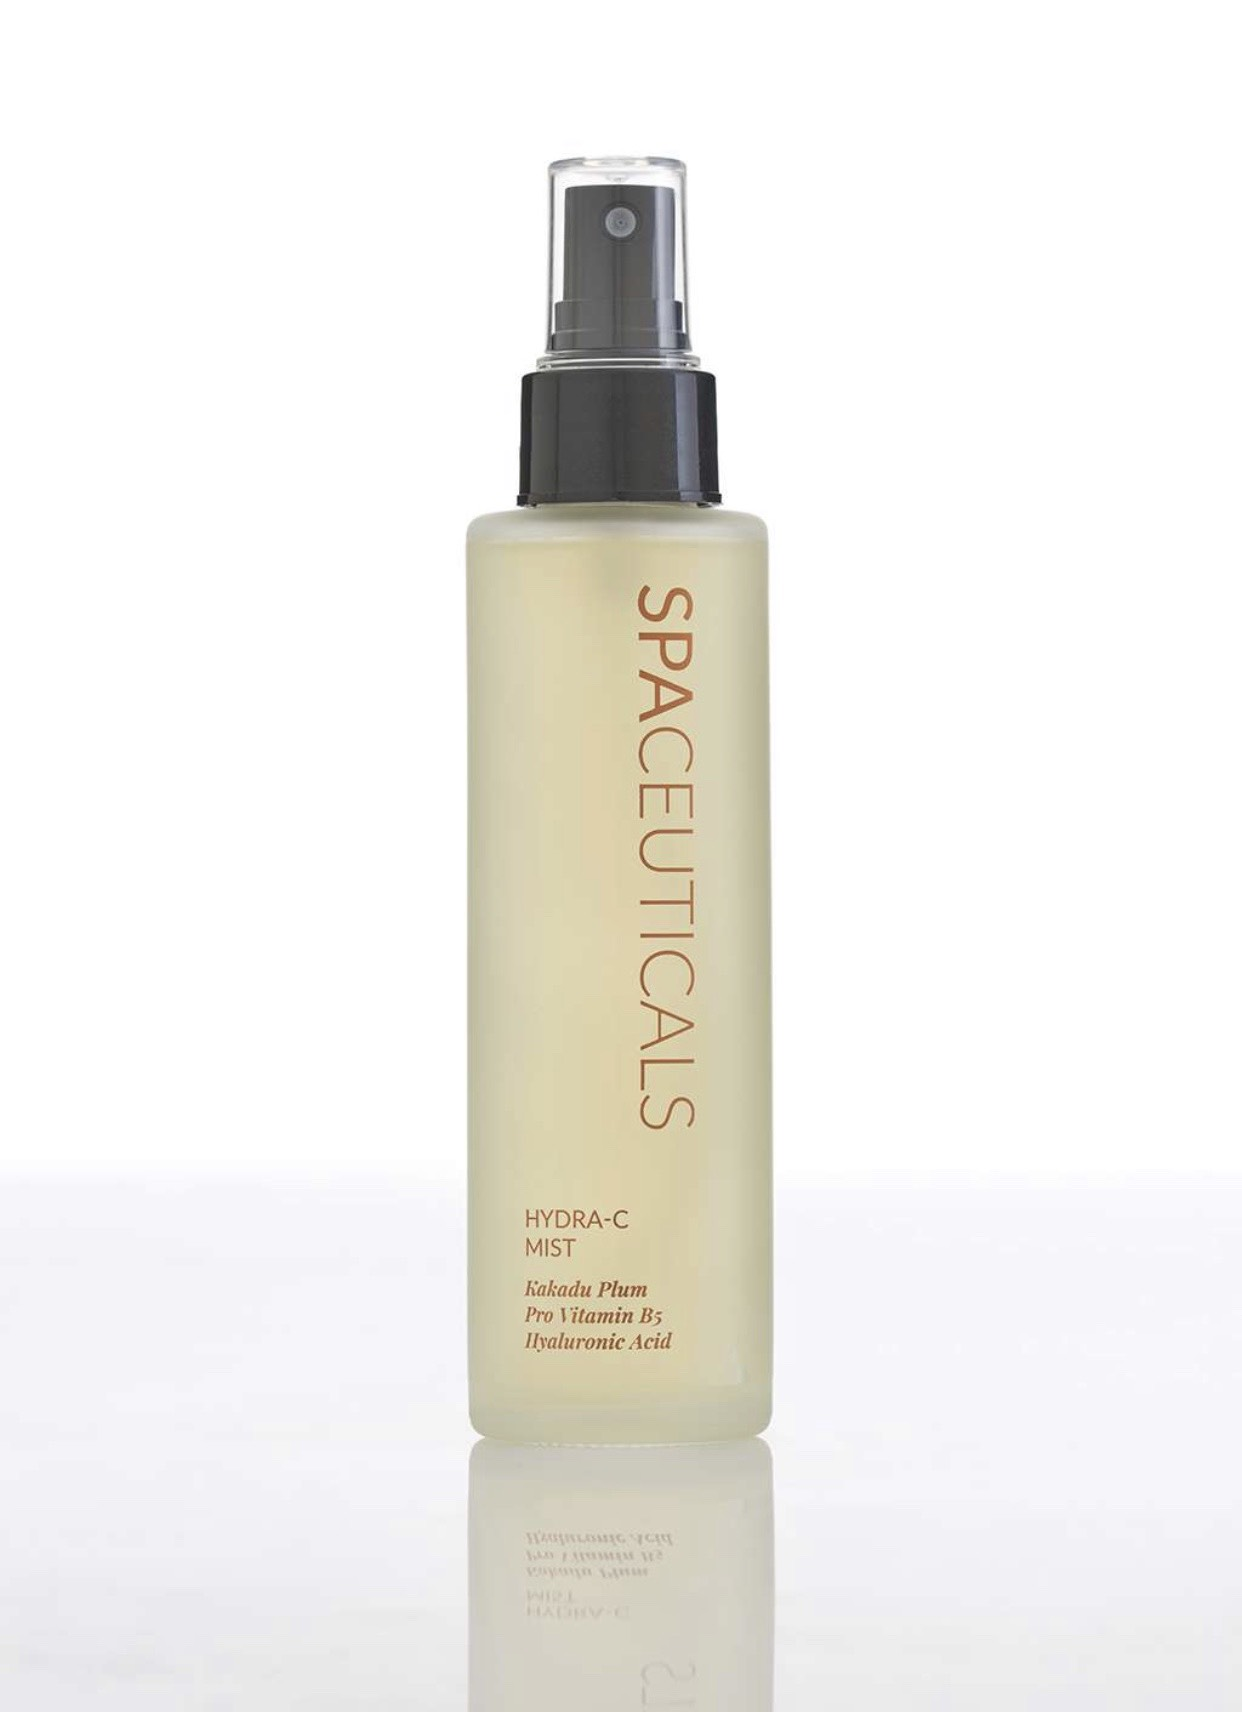 Spaceuticals by Waterlily Hydra-C Mist